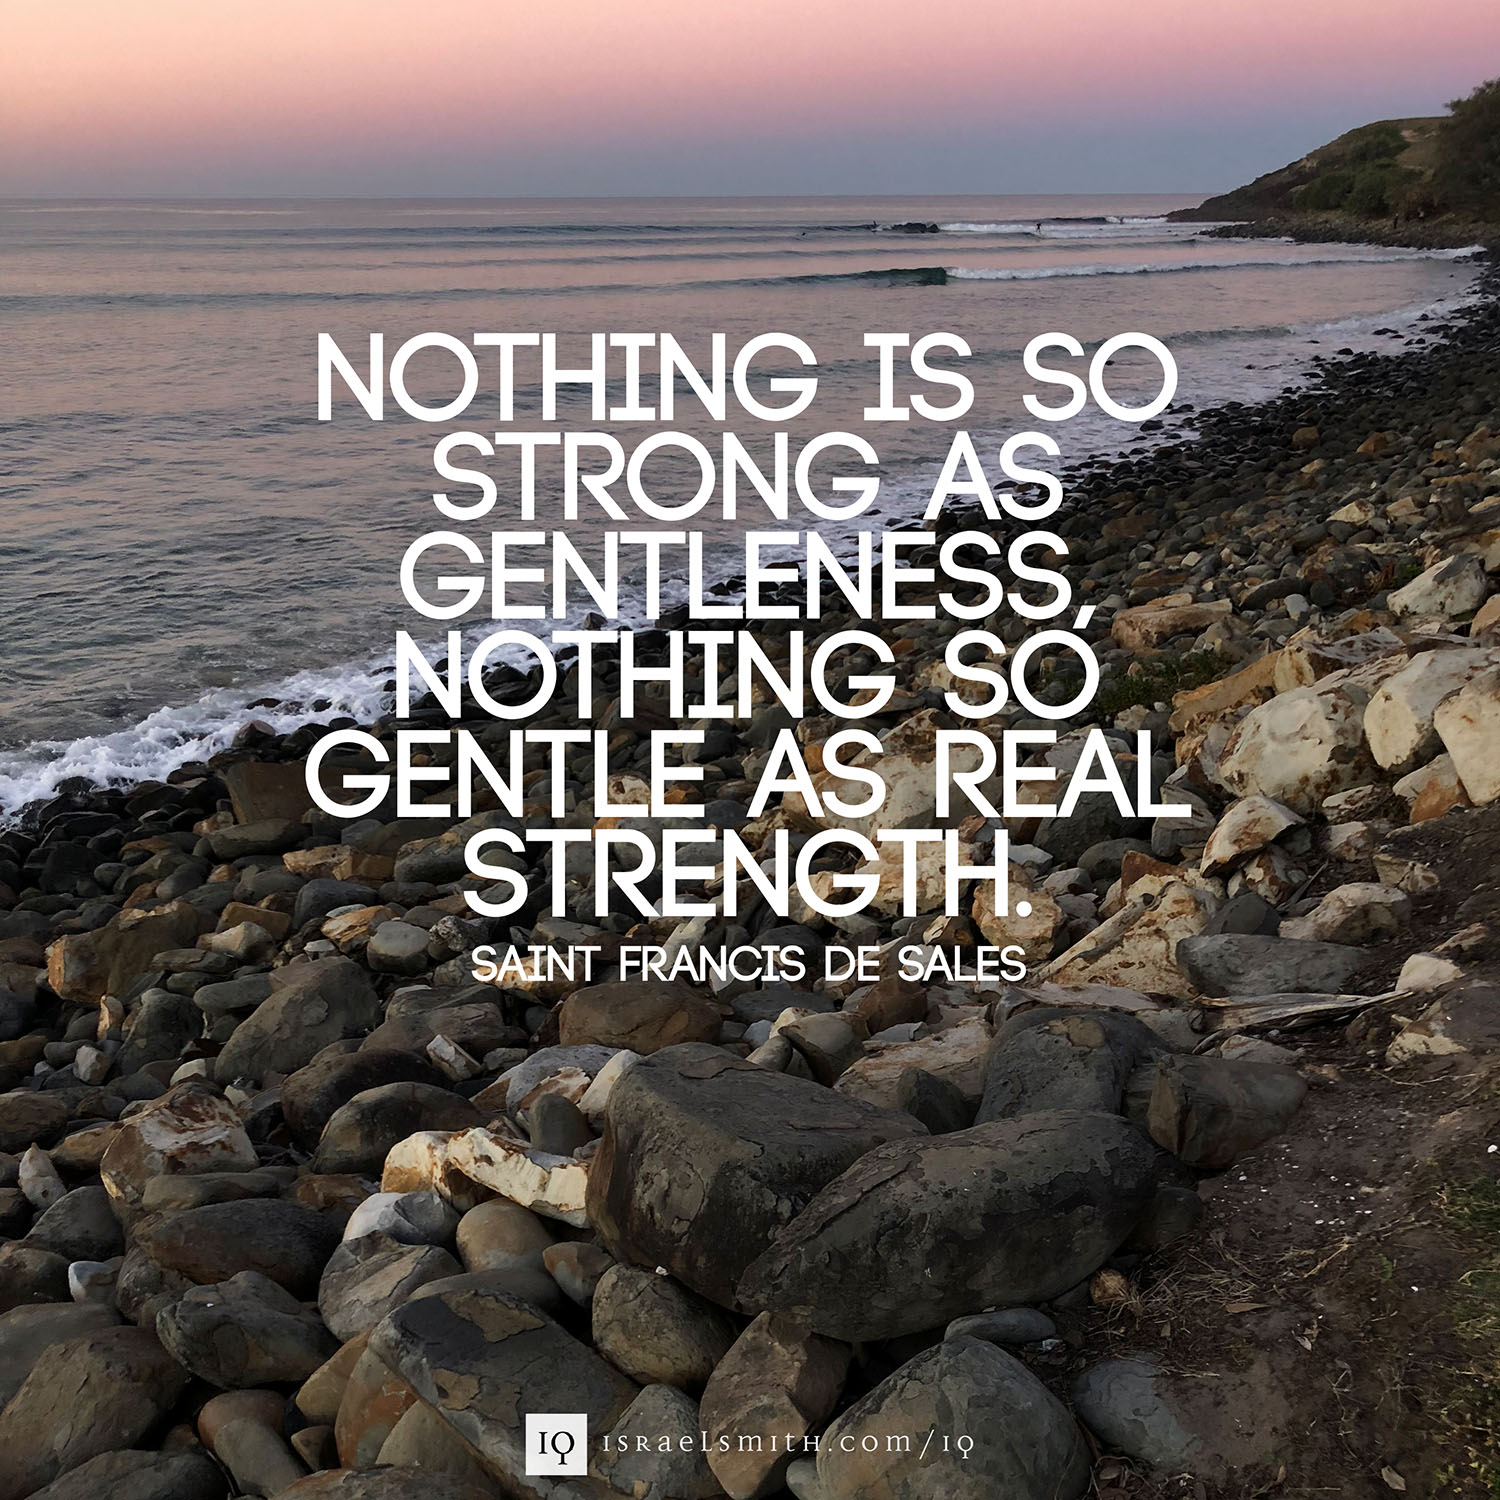 Nothing is so strong as gentleness